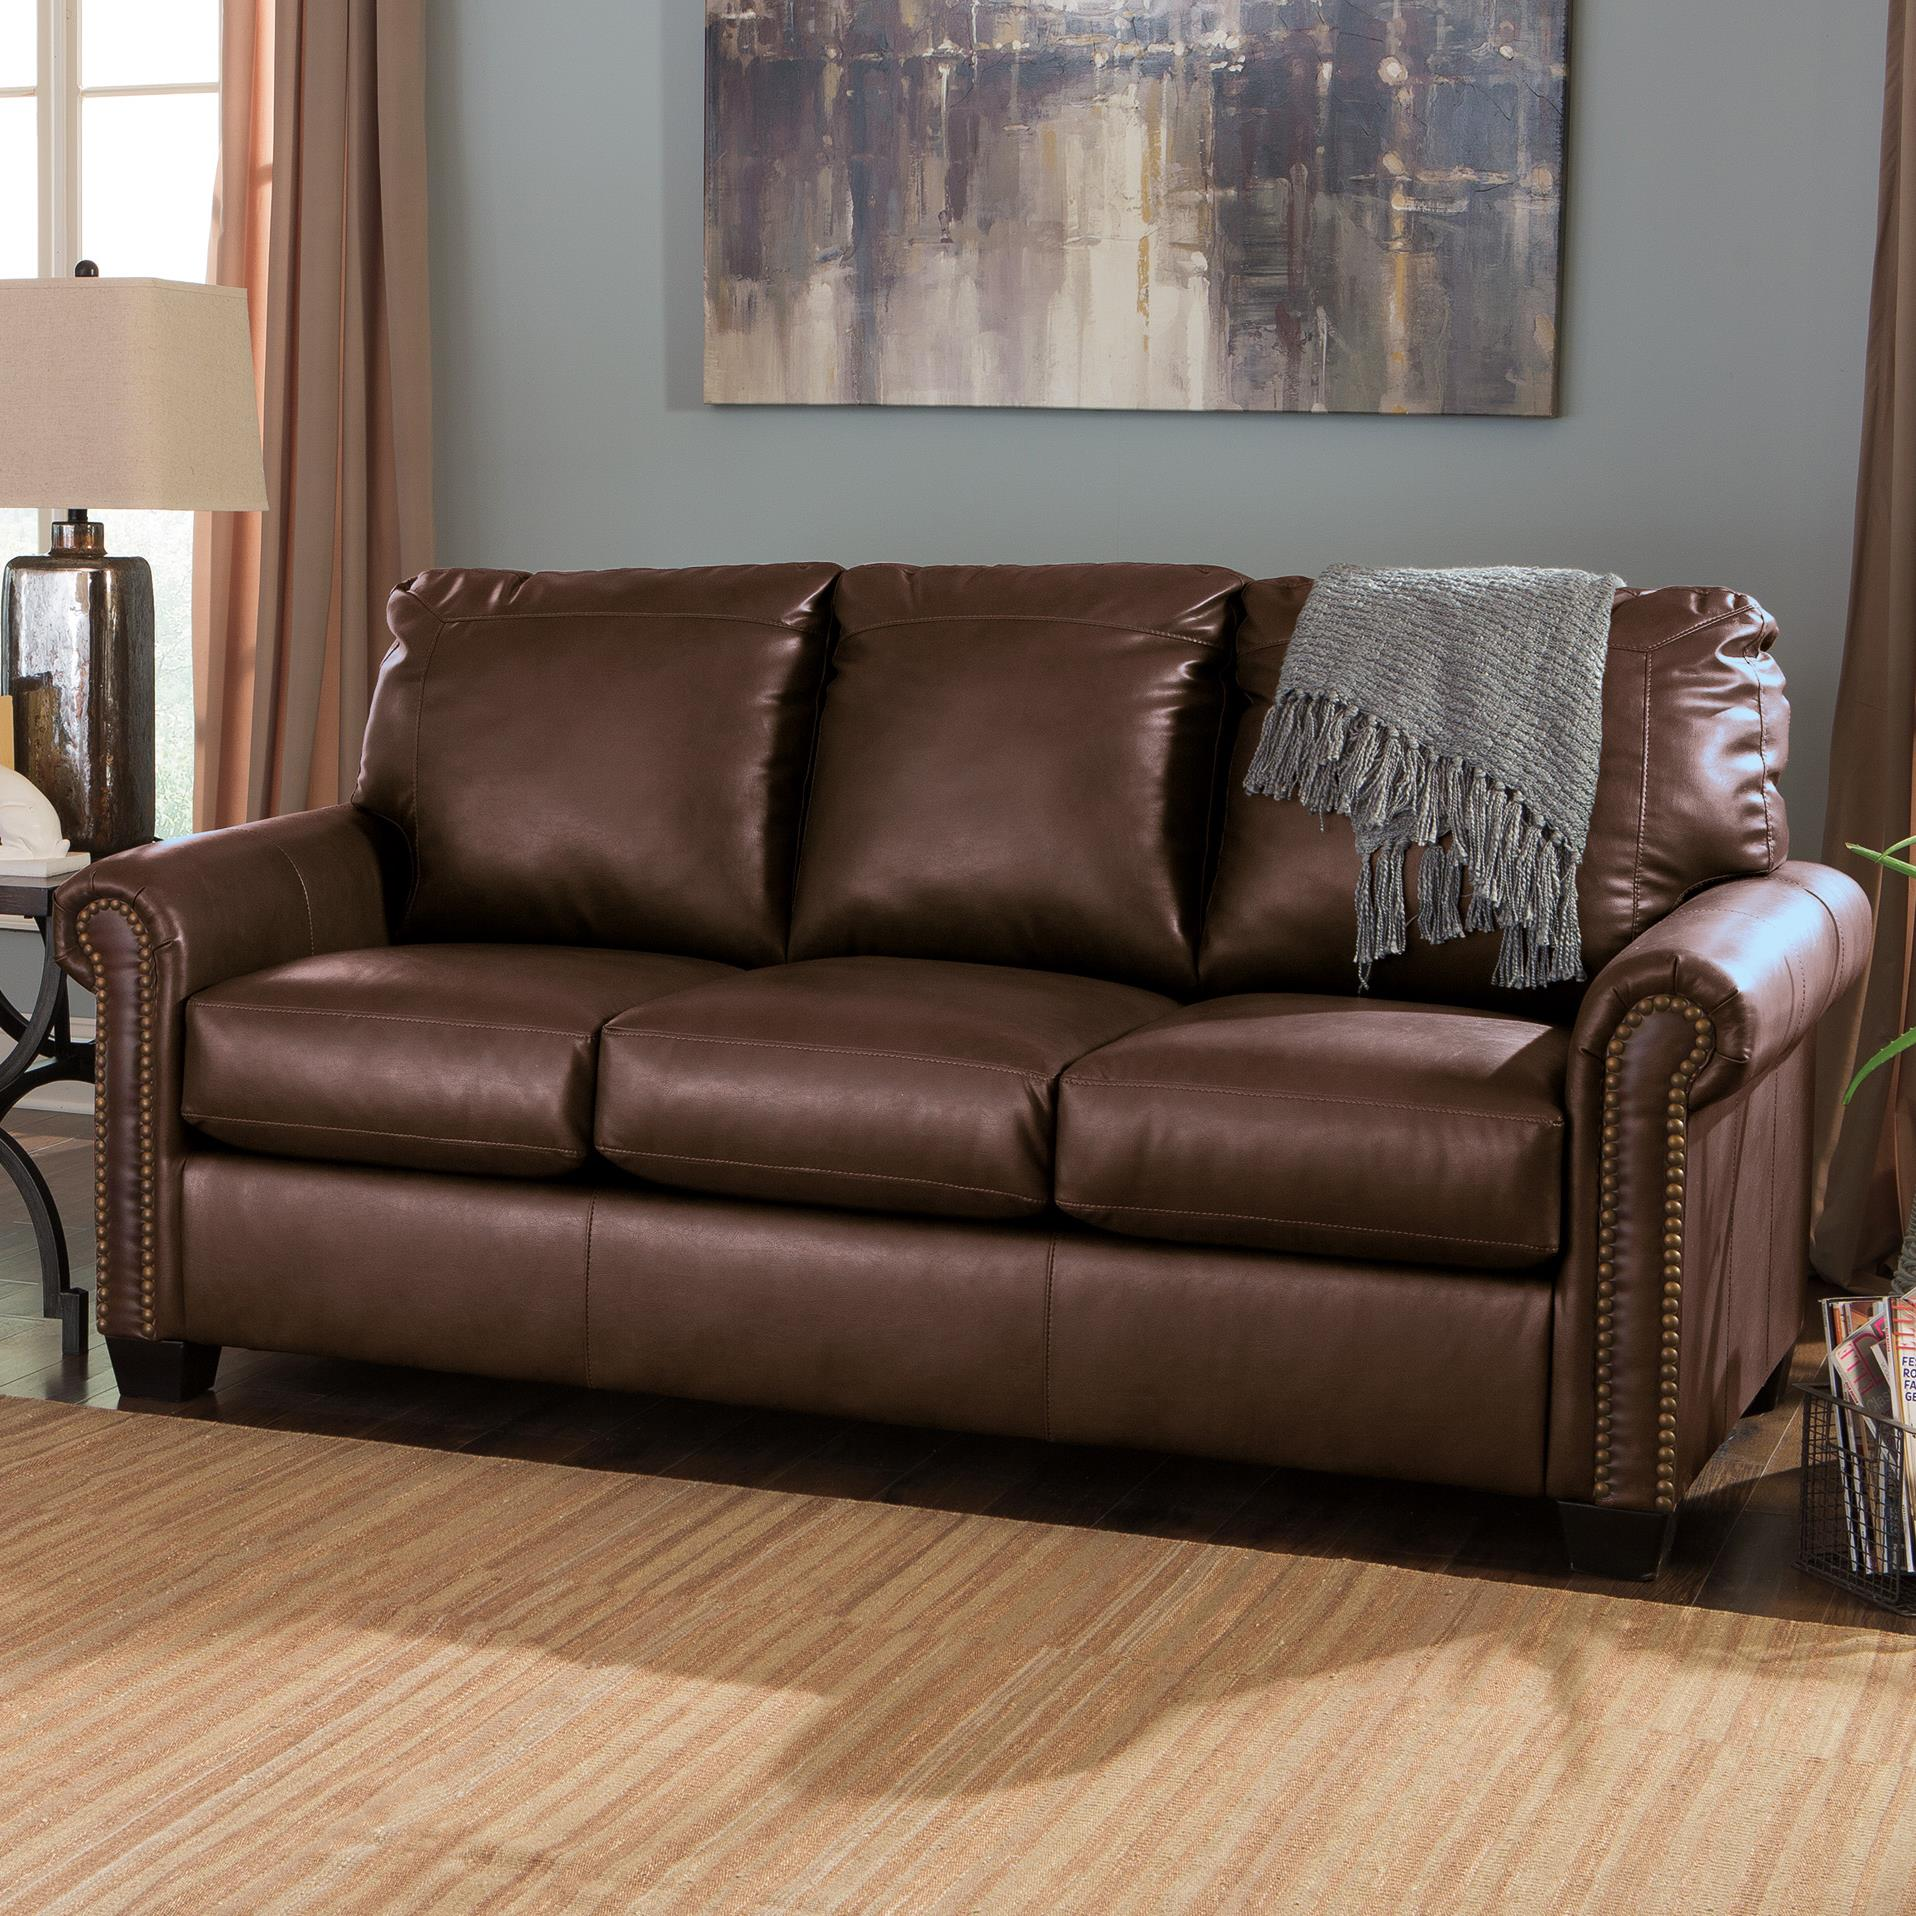 Signature Design by Ashley Lottie DuraBlend® Full Sofa Sleeper - Item Number: 3800036